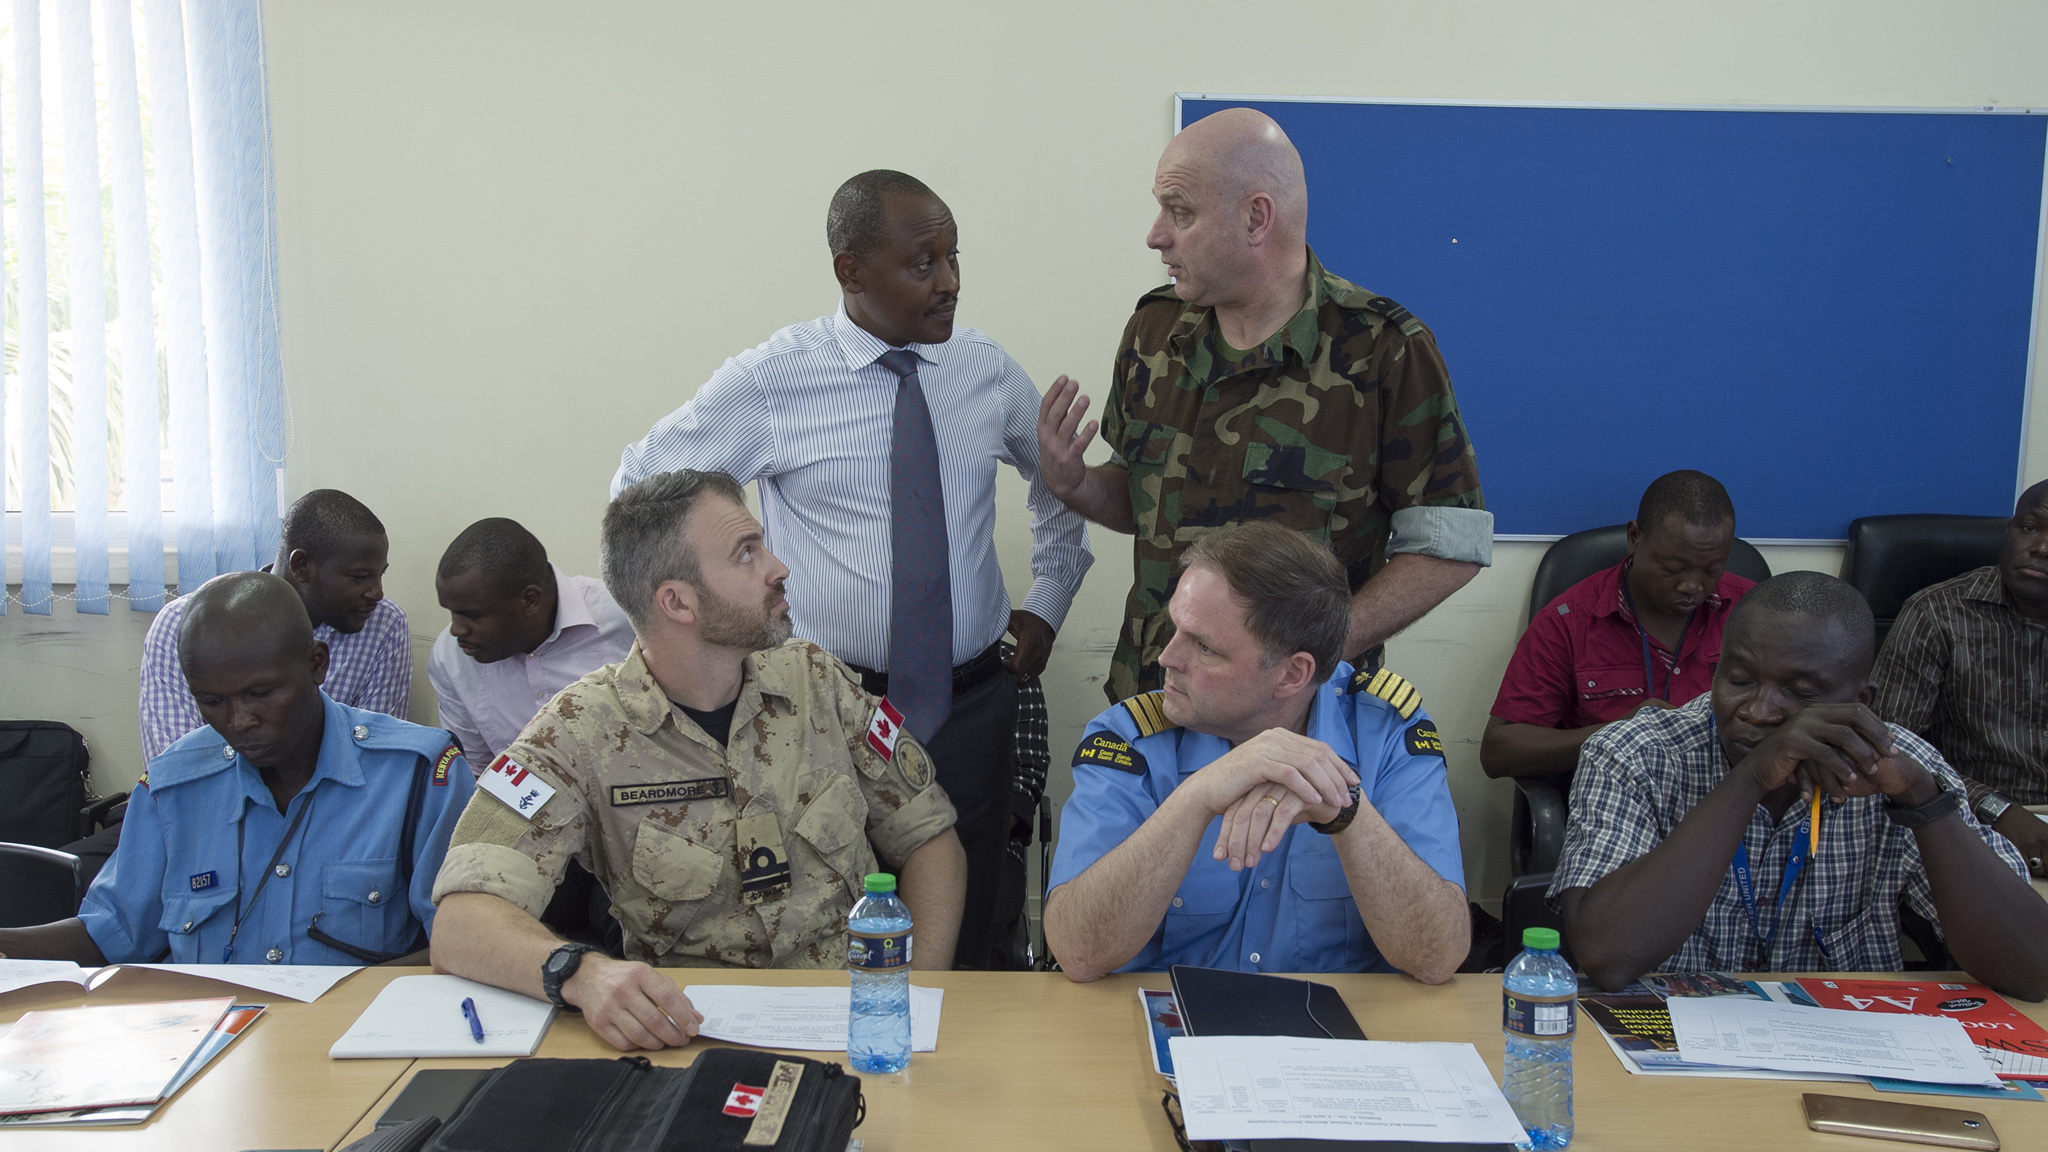 Mombasa, Kenya. January 31, 2017 – (Standing L-R) Kiruja Micheni, Project Officer for Counter Piracy Programme at International Maritime Organization,  Lieutenant Commander Derk Jan Hoving, Royal Netherlands Navy, (sitting L-R) Lieutenant (Navy) Christopher Beardmore, Canadian Armed Forces and Director of Programs, Brian Wootton, Canadian Coast Guard share ideas during the inter-agency cooperation seminar held at the Regional Maritime Rescue Coordination Centre in preparation for Exercise CUTLASS EXPRESS 17. (Photo: MCpl True-dee McCarthy, Canadian Forces Combat Camera)